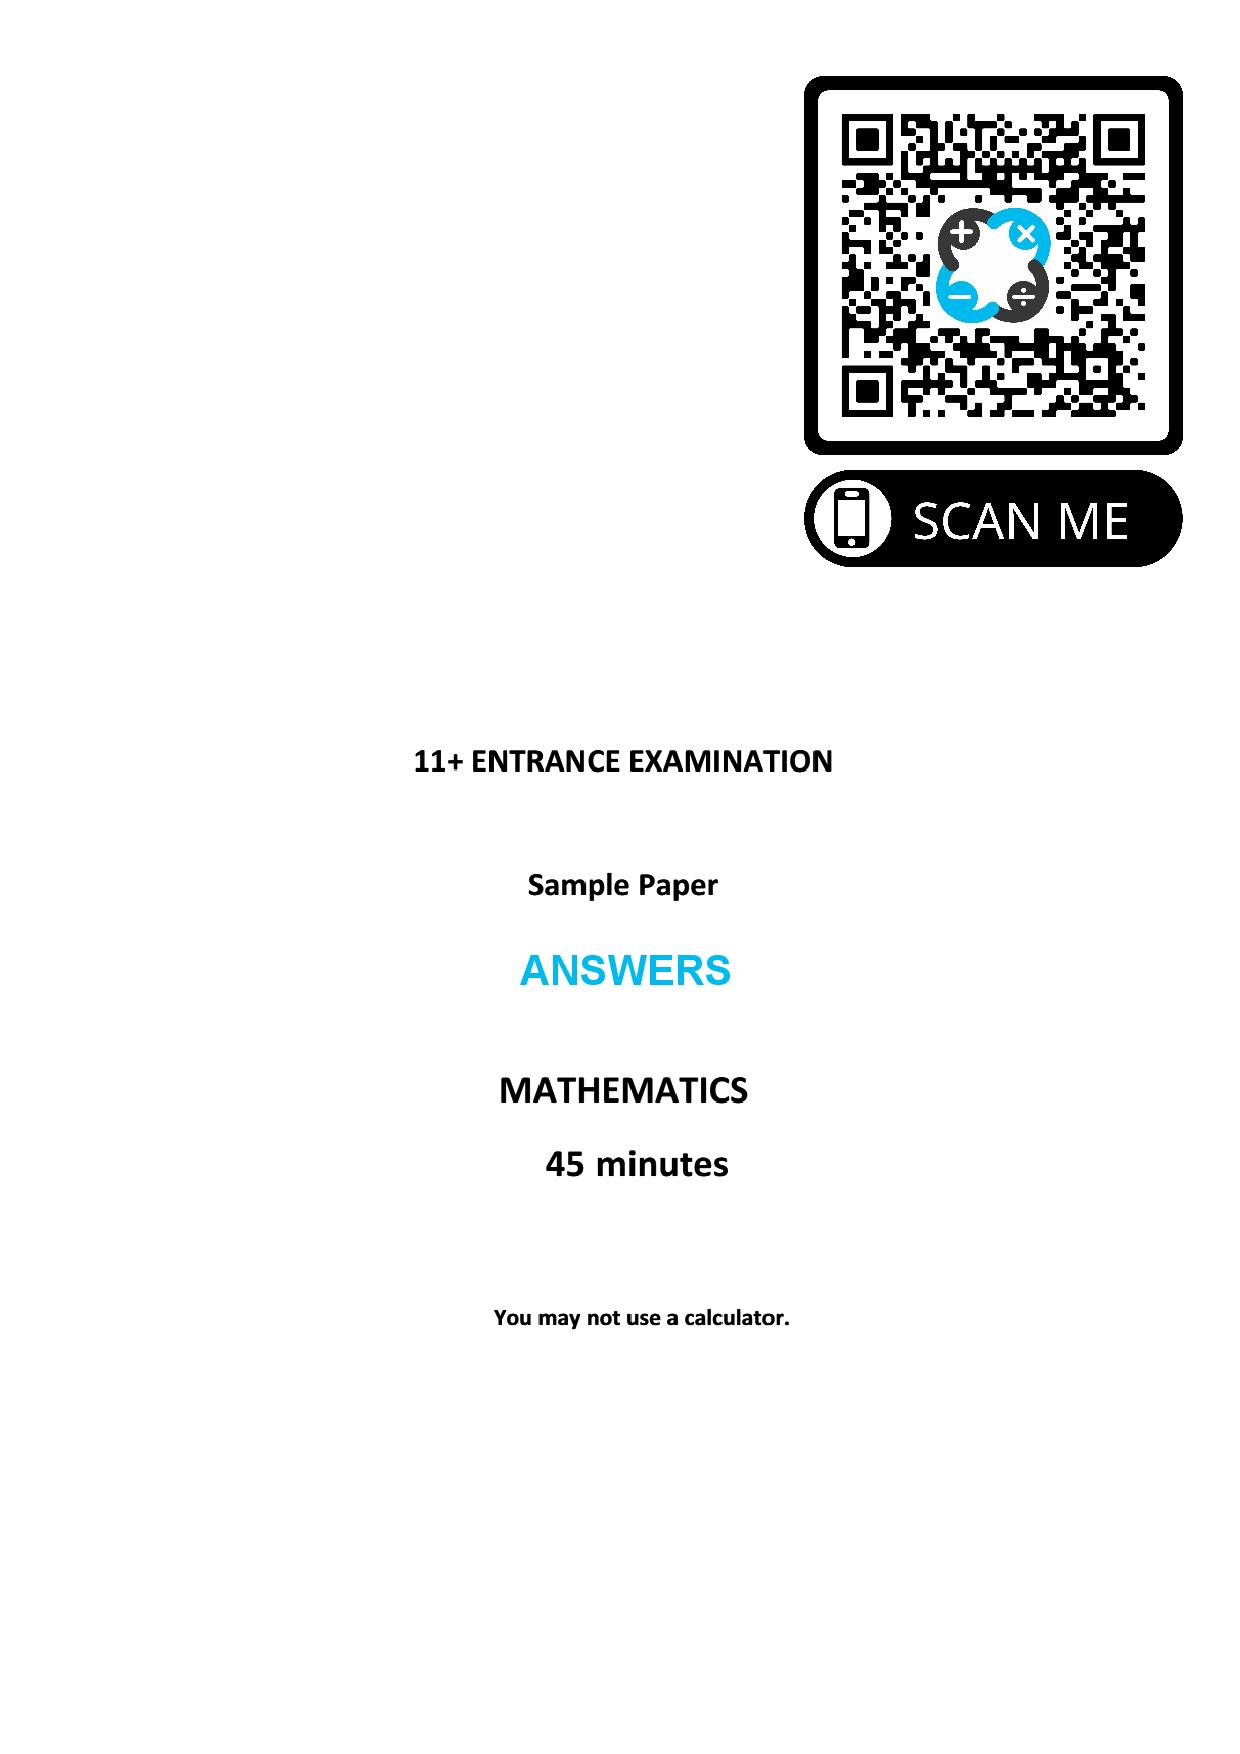 St Georges College 11 ENTRANCE EXAMINATION SAMPLE Answer Paper page 001 1